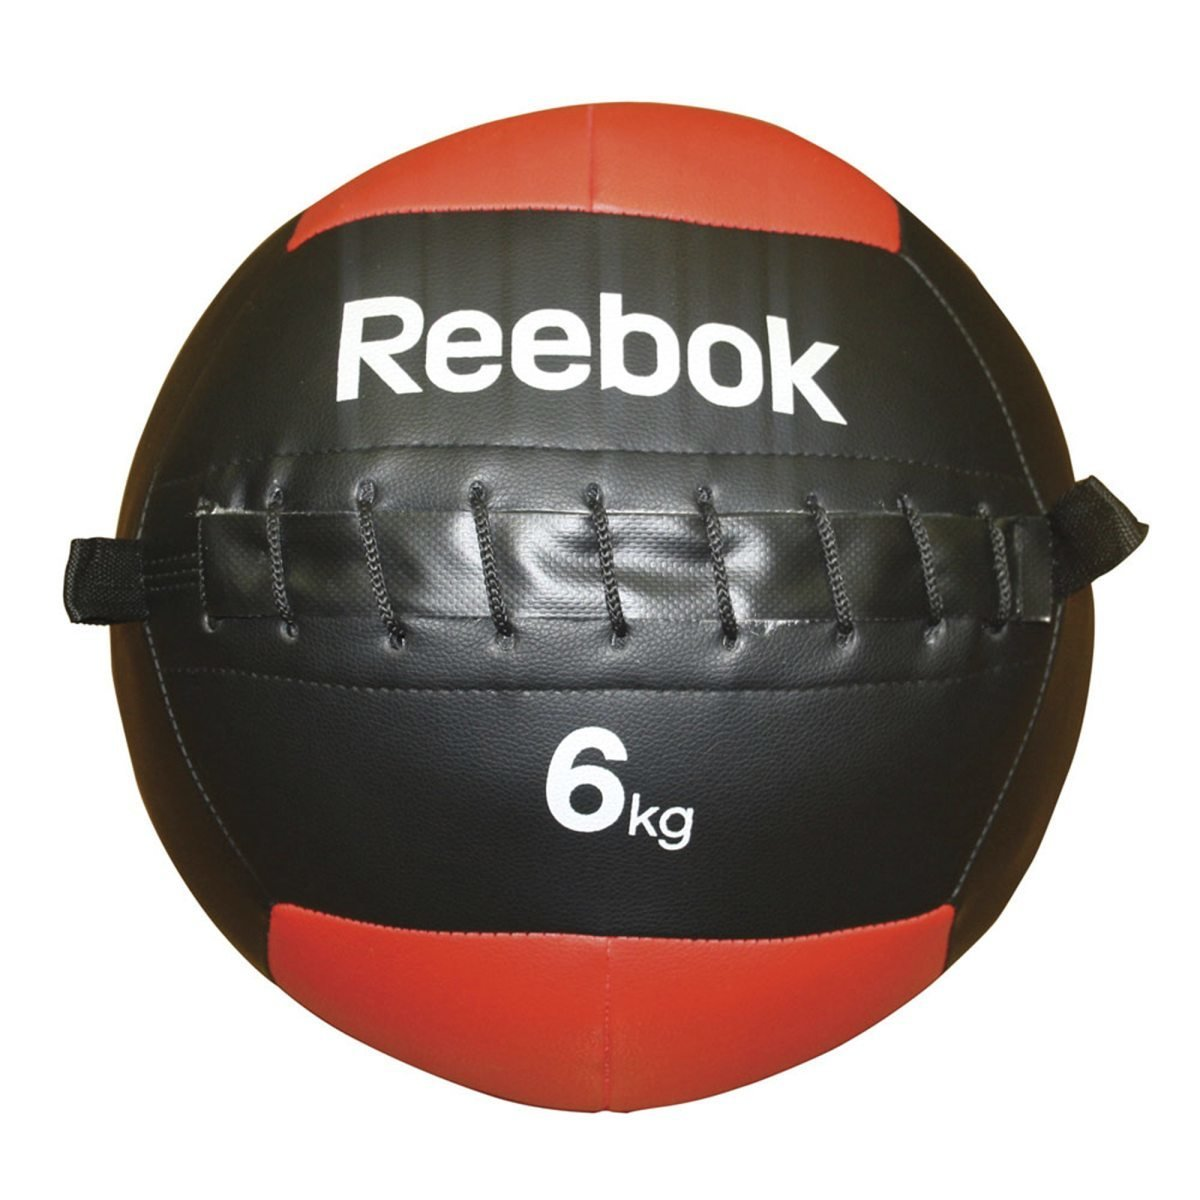 Reebok Studio Softball 12kg